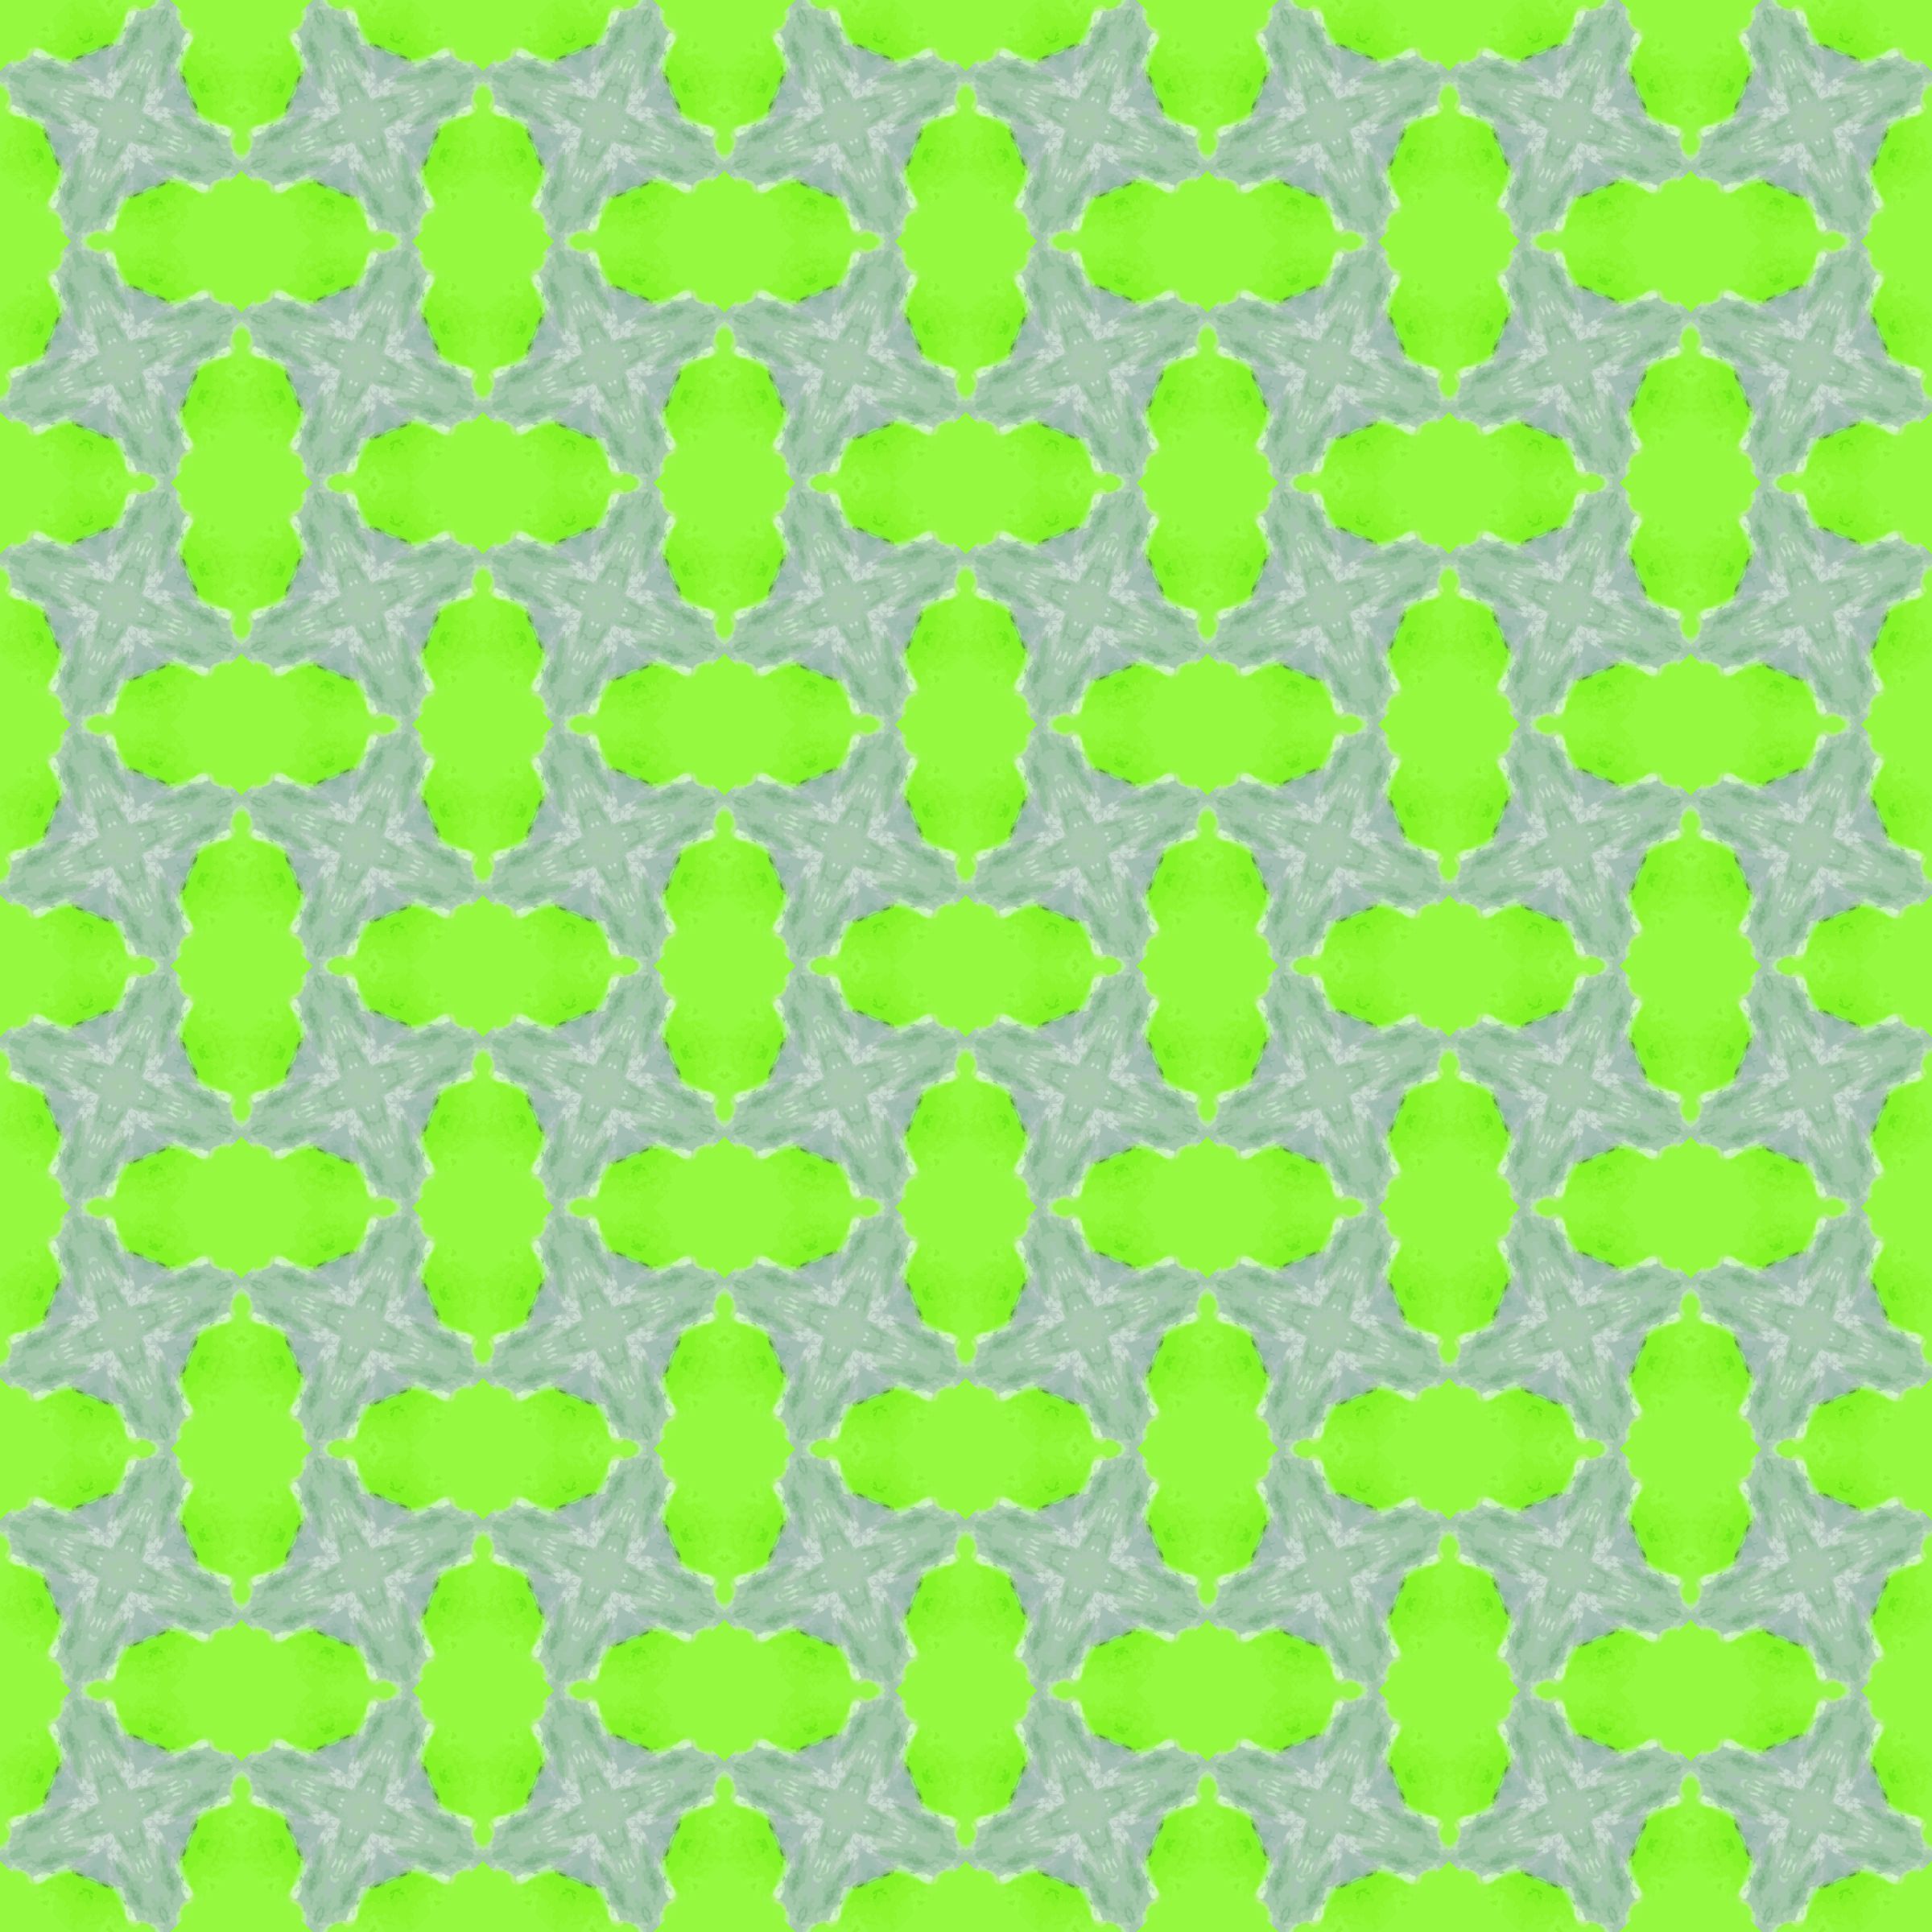 Background pattern 182 (colour 4) by Firkin